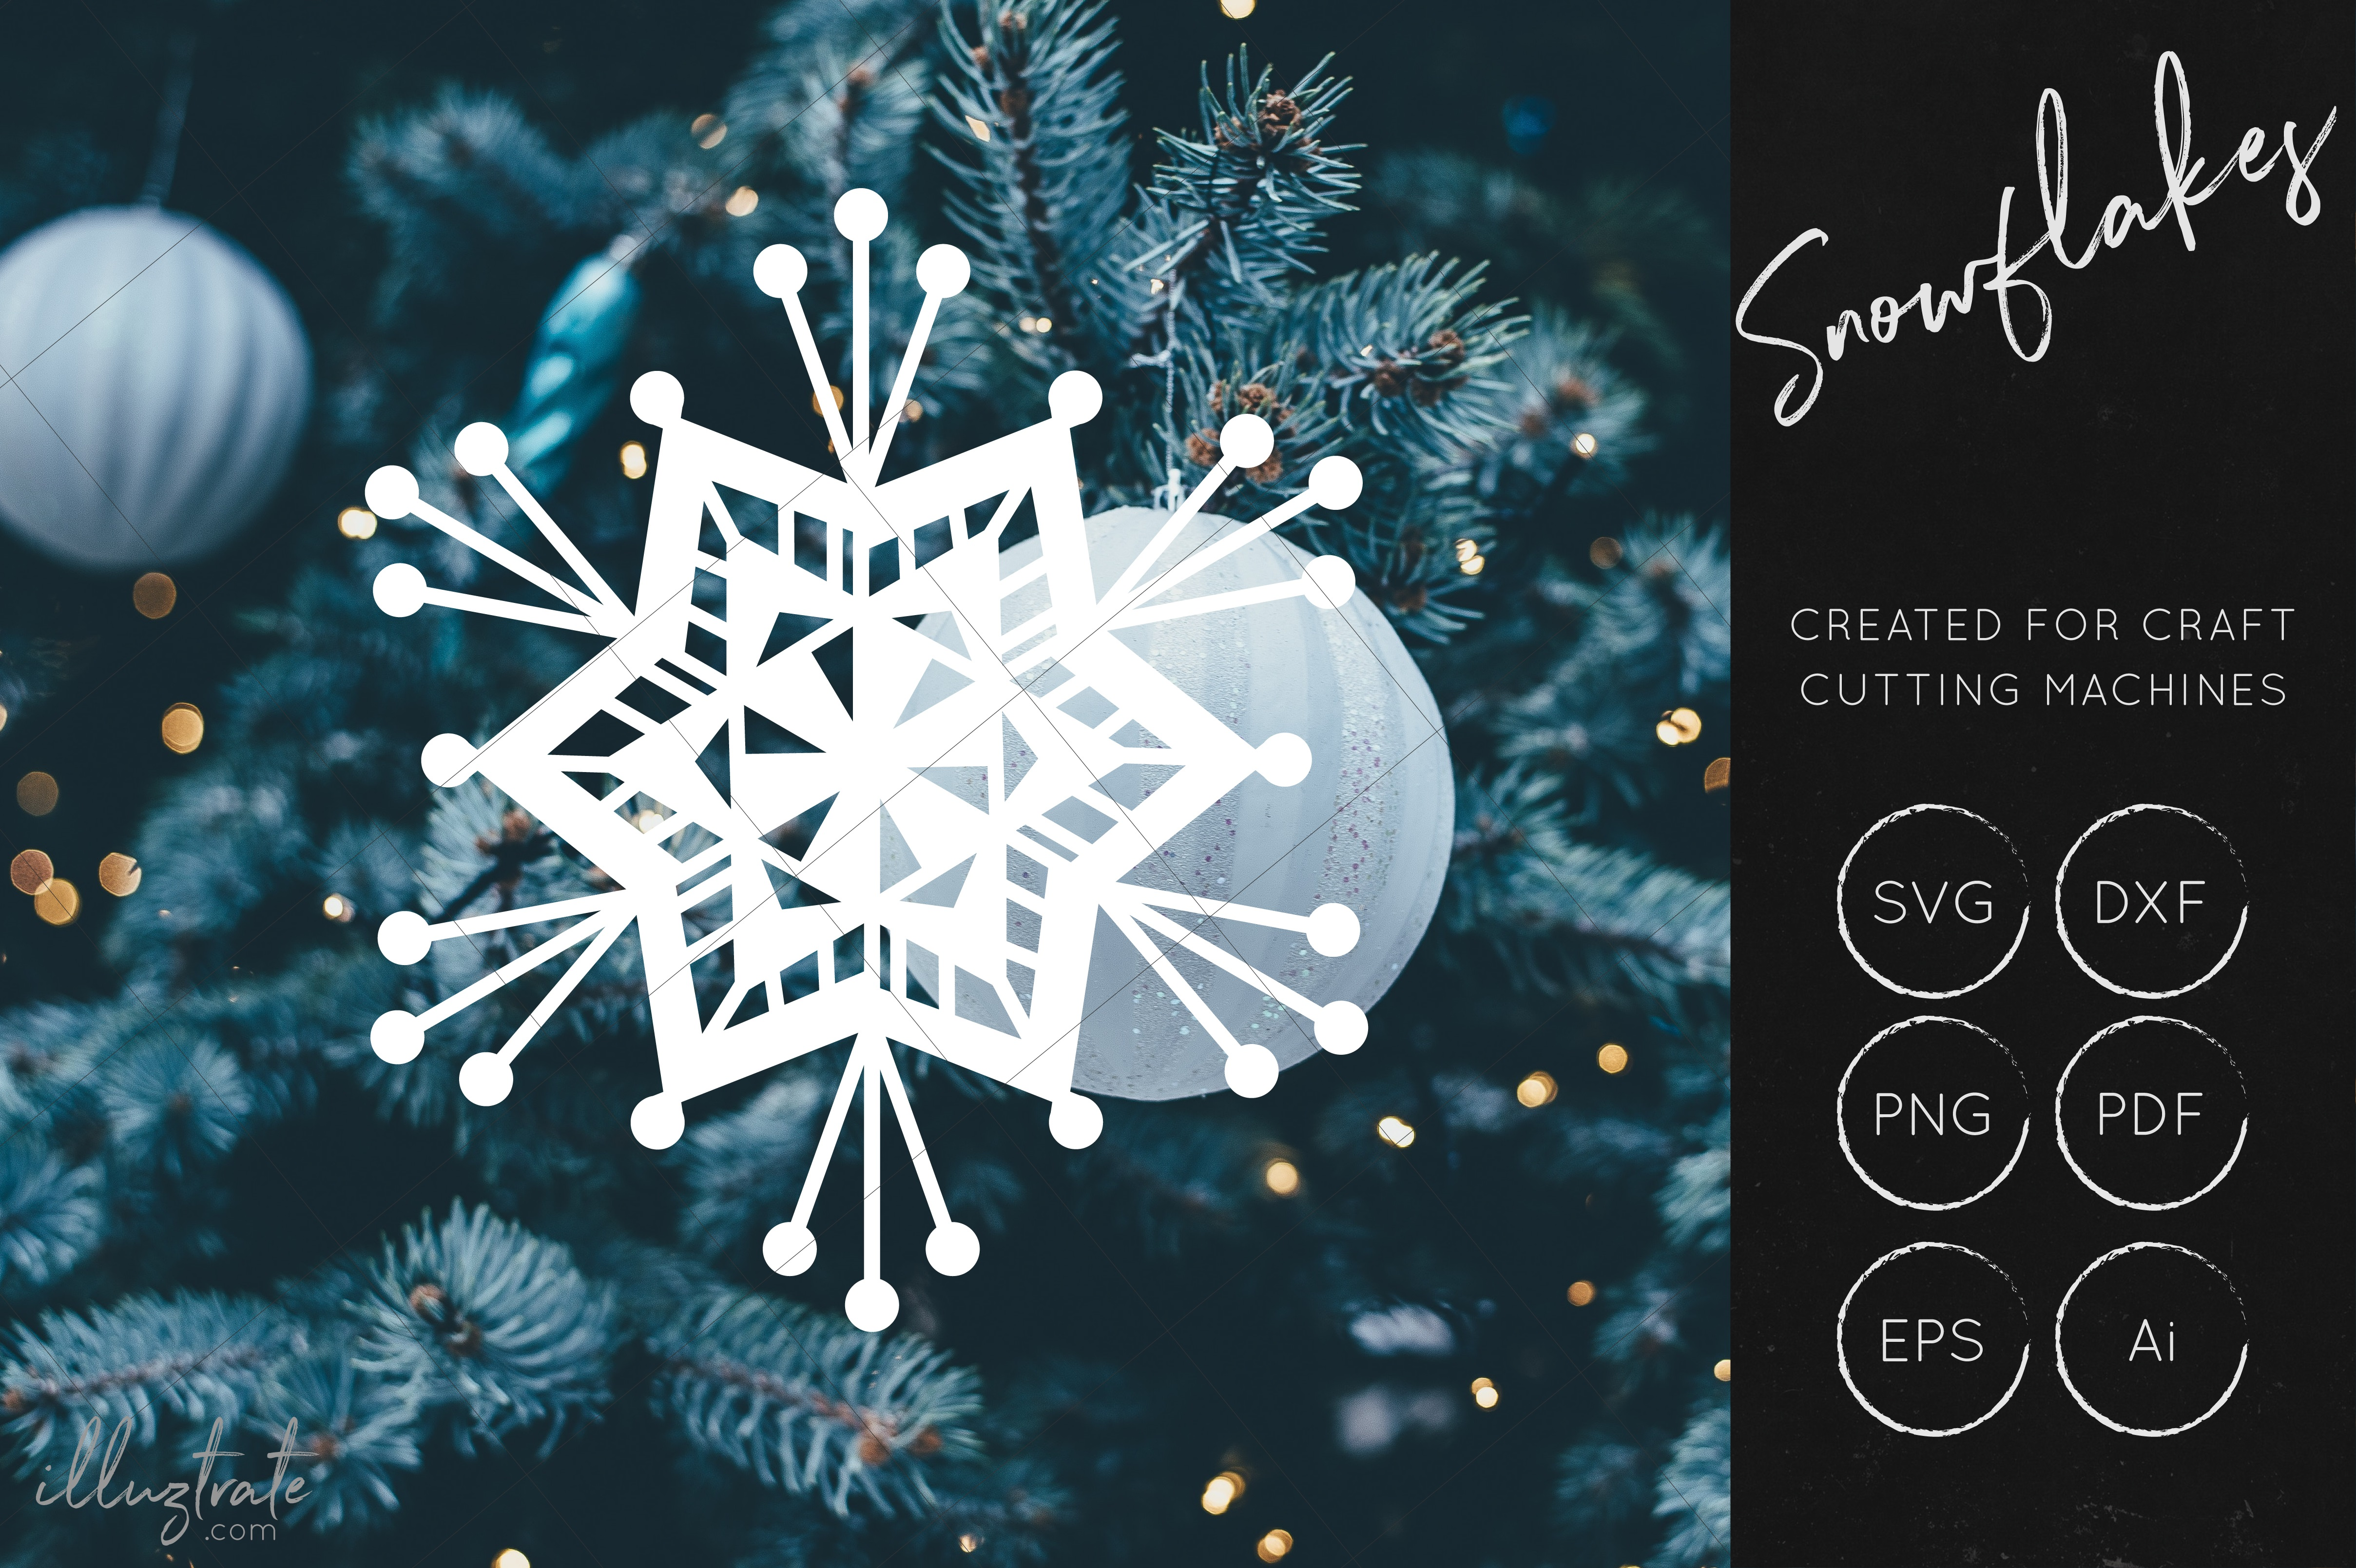 Snowflake SVG Cut File Bundles - Christmas SVG - Snowflakes example image 7